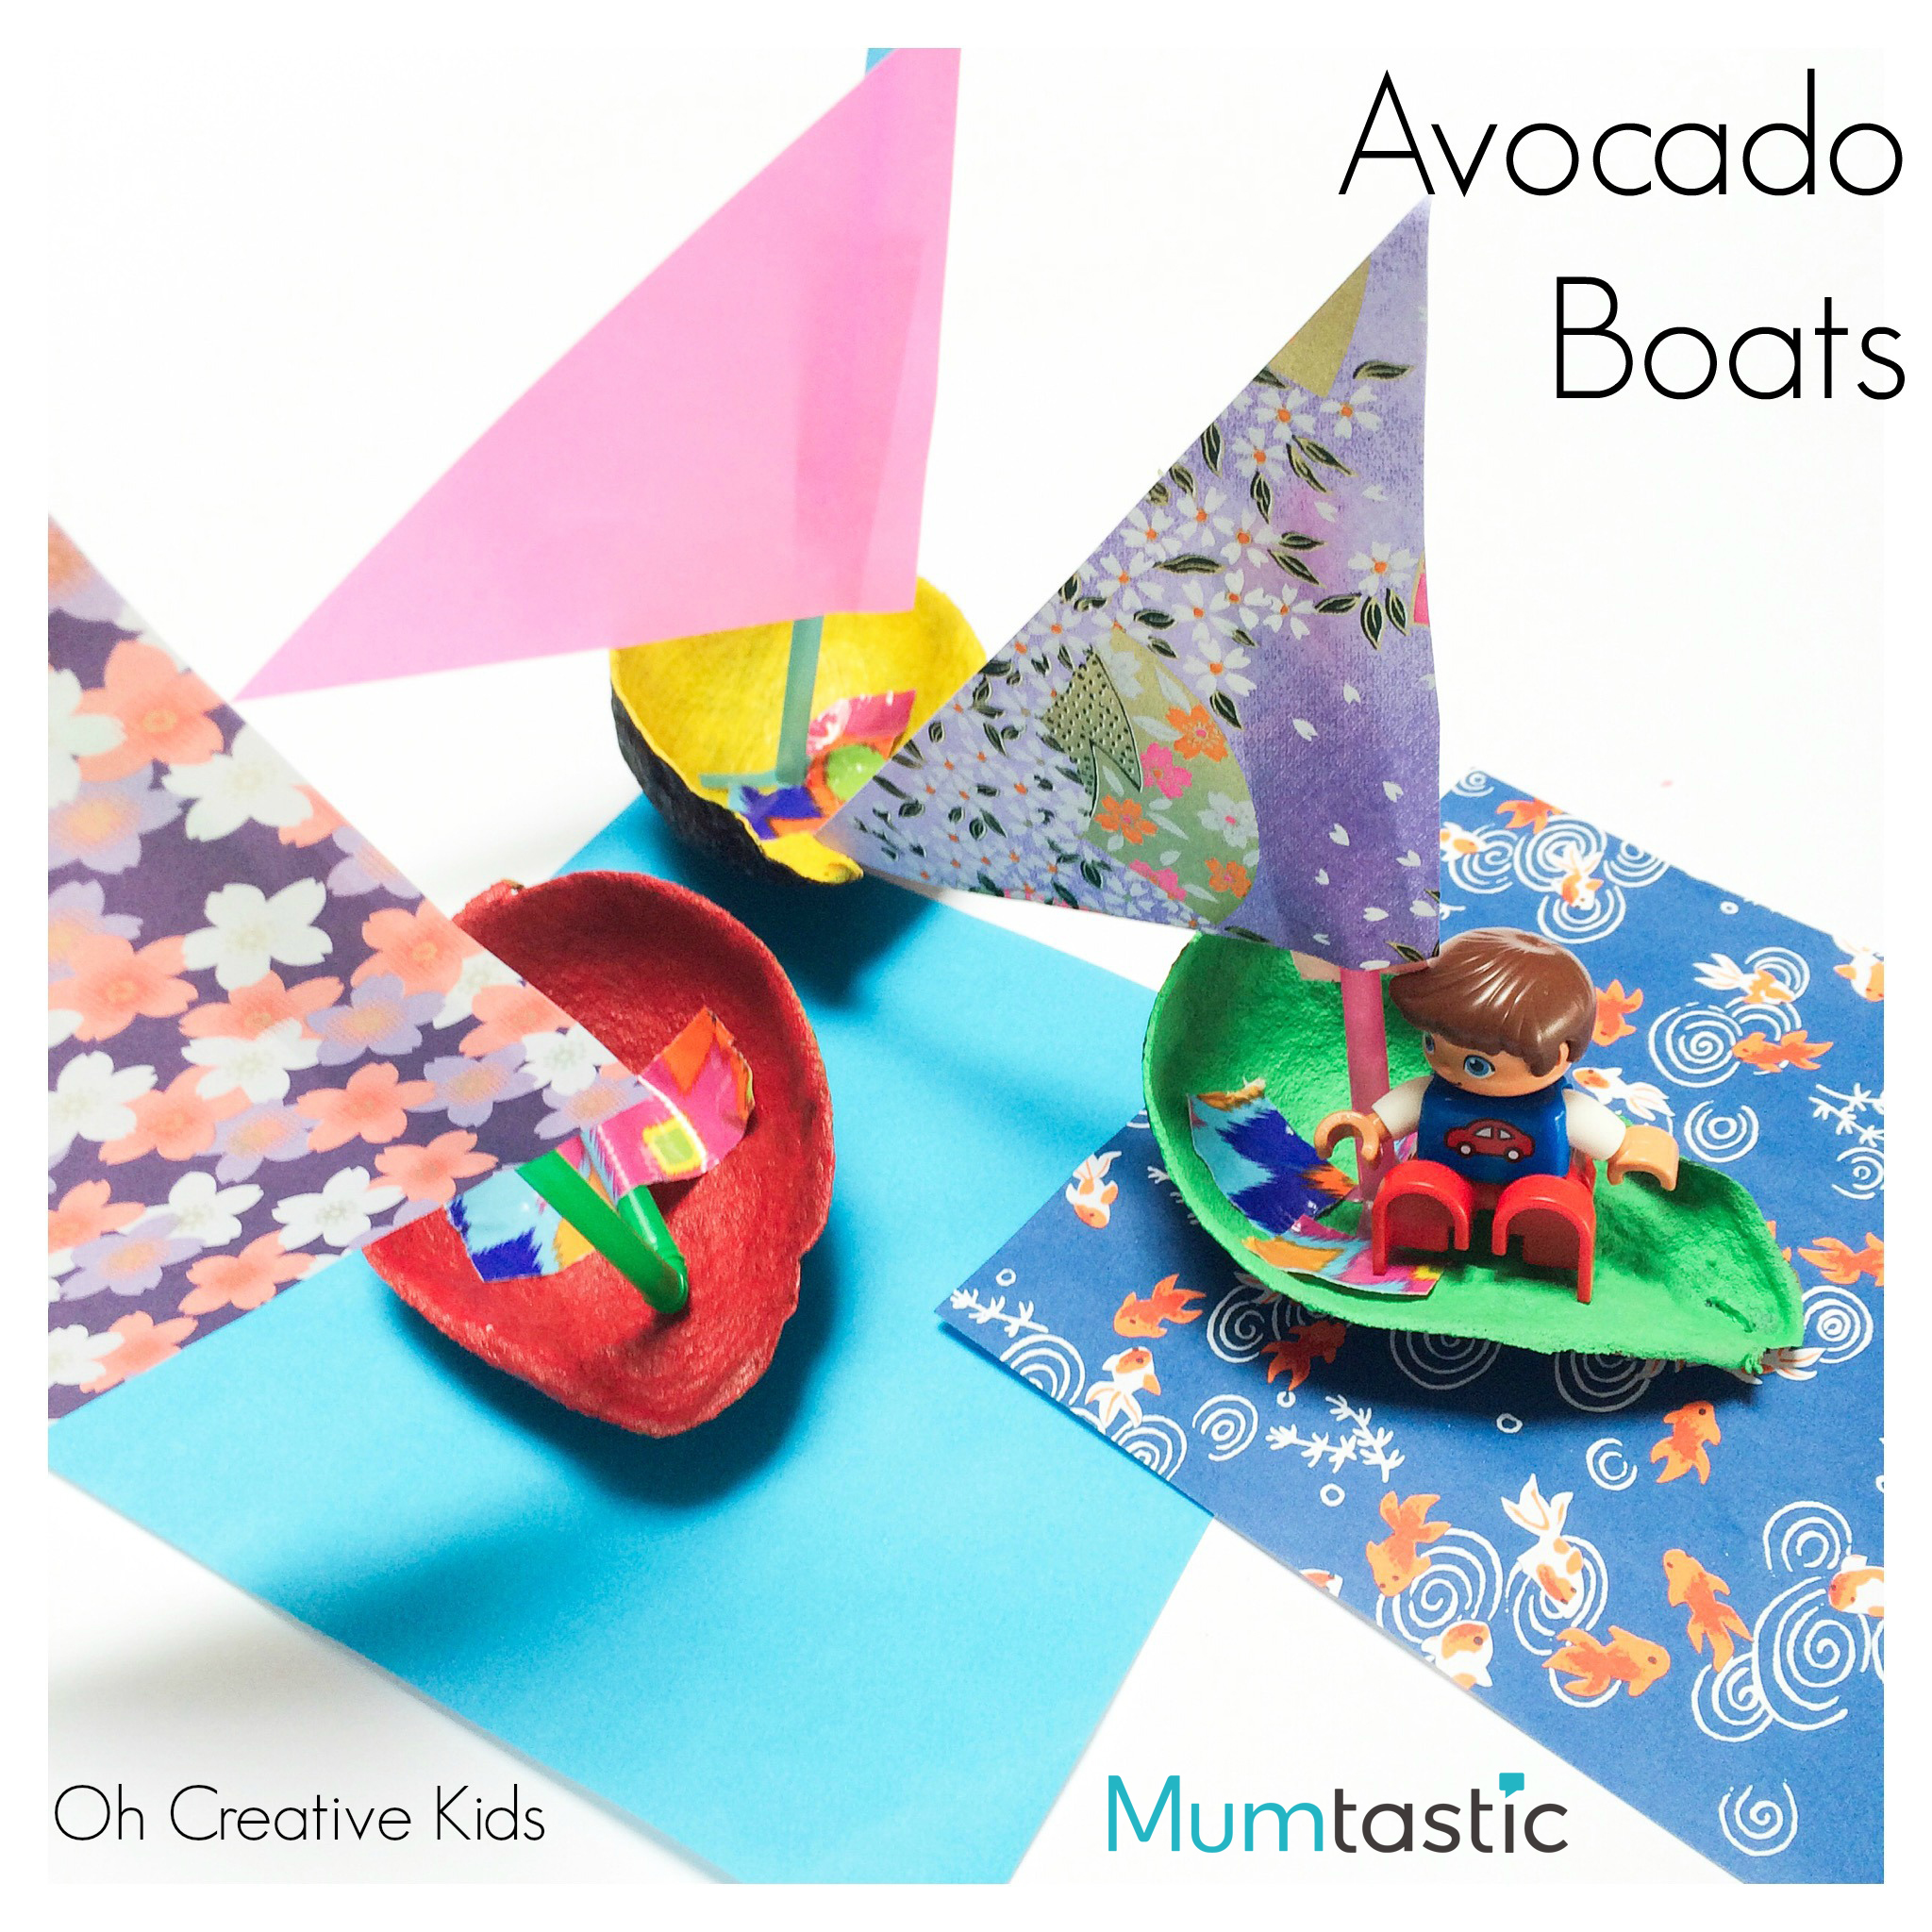 Make an Avocado Boat